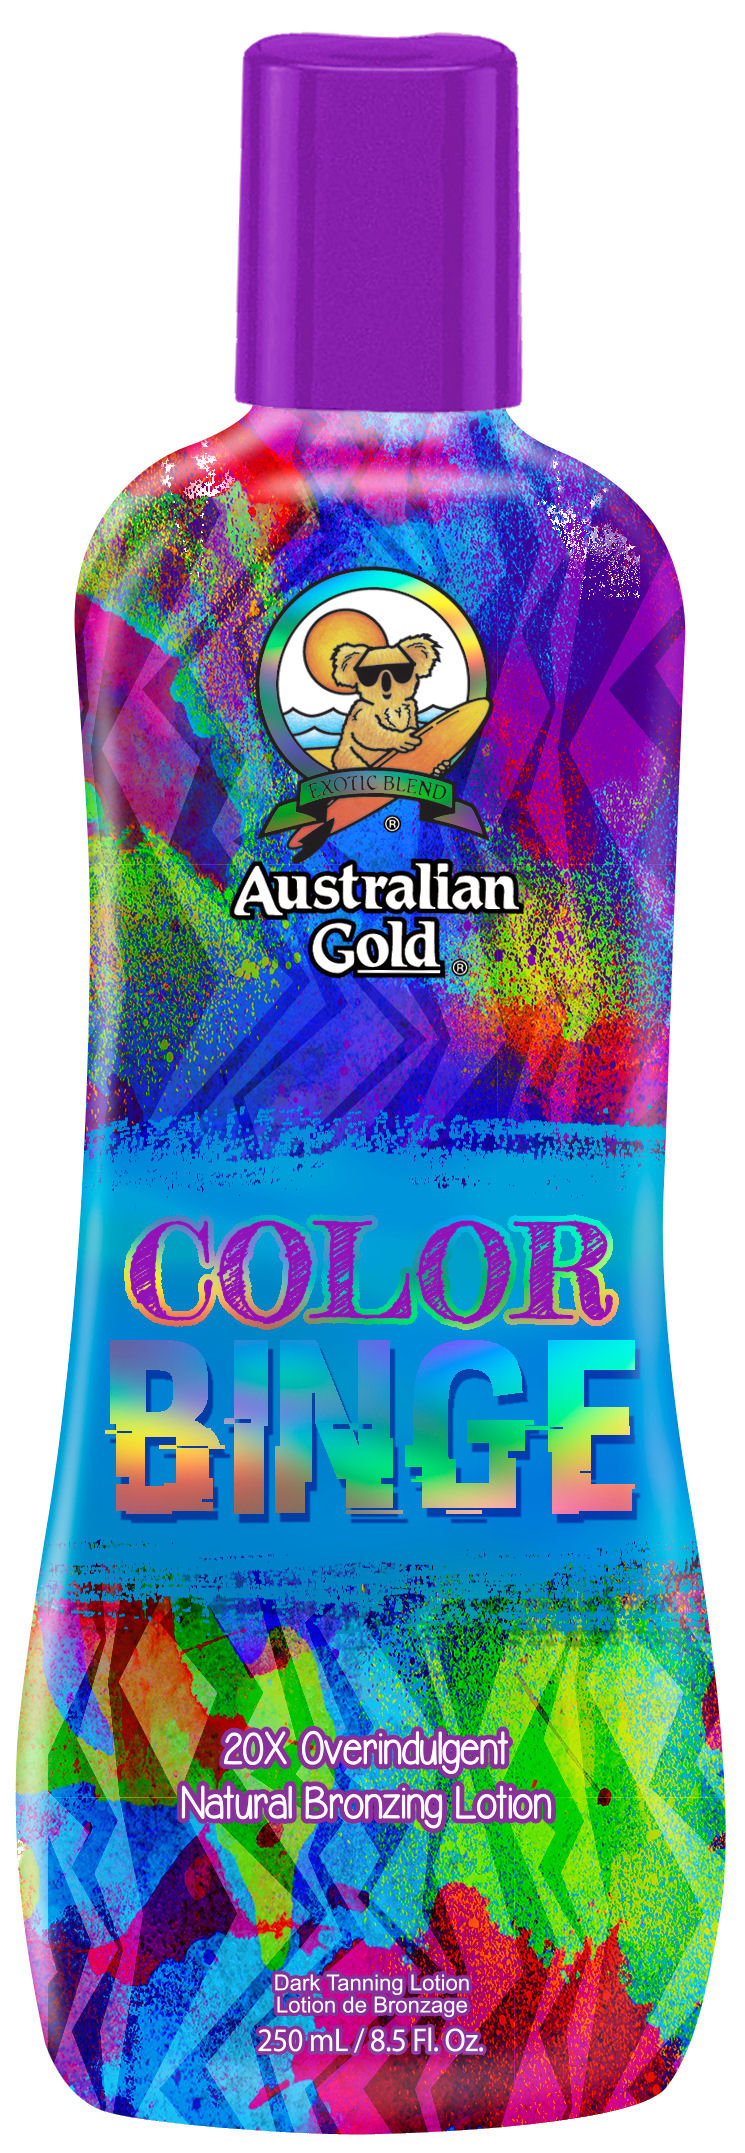 Color Binge™ 20X Overindulgent Natural Bronzing Lotion